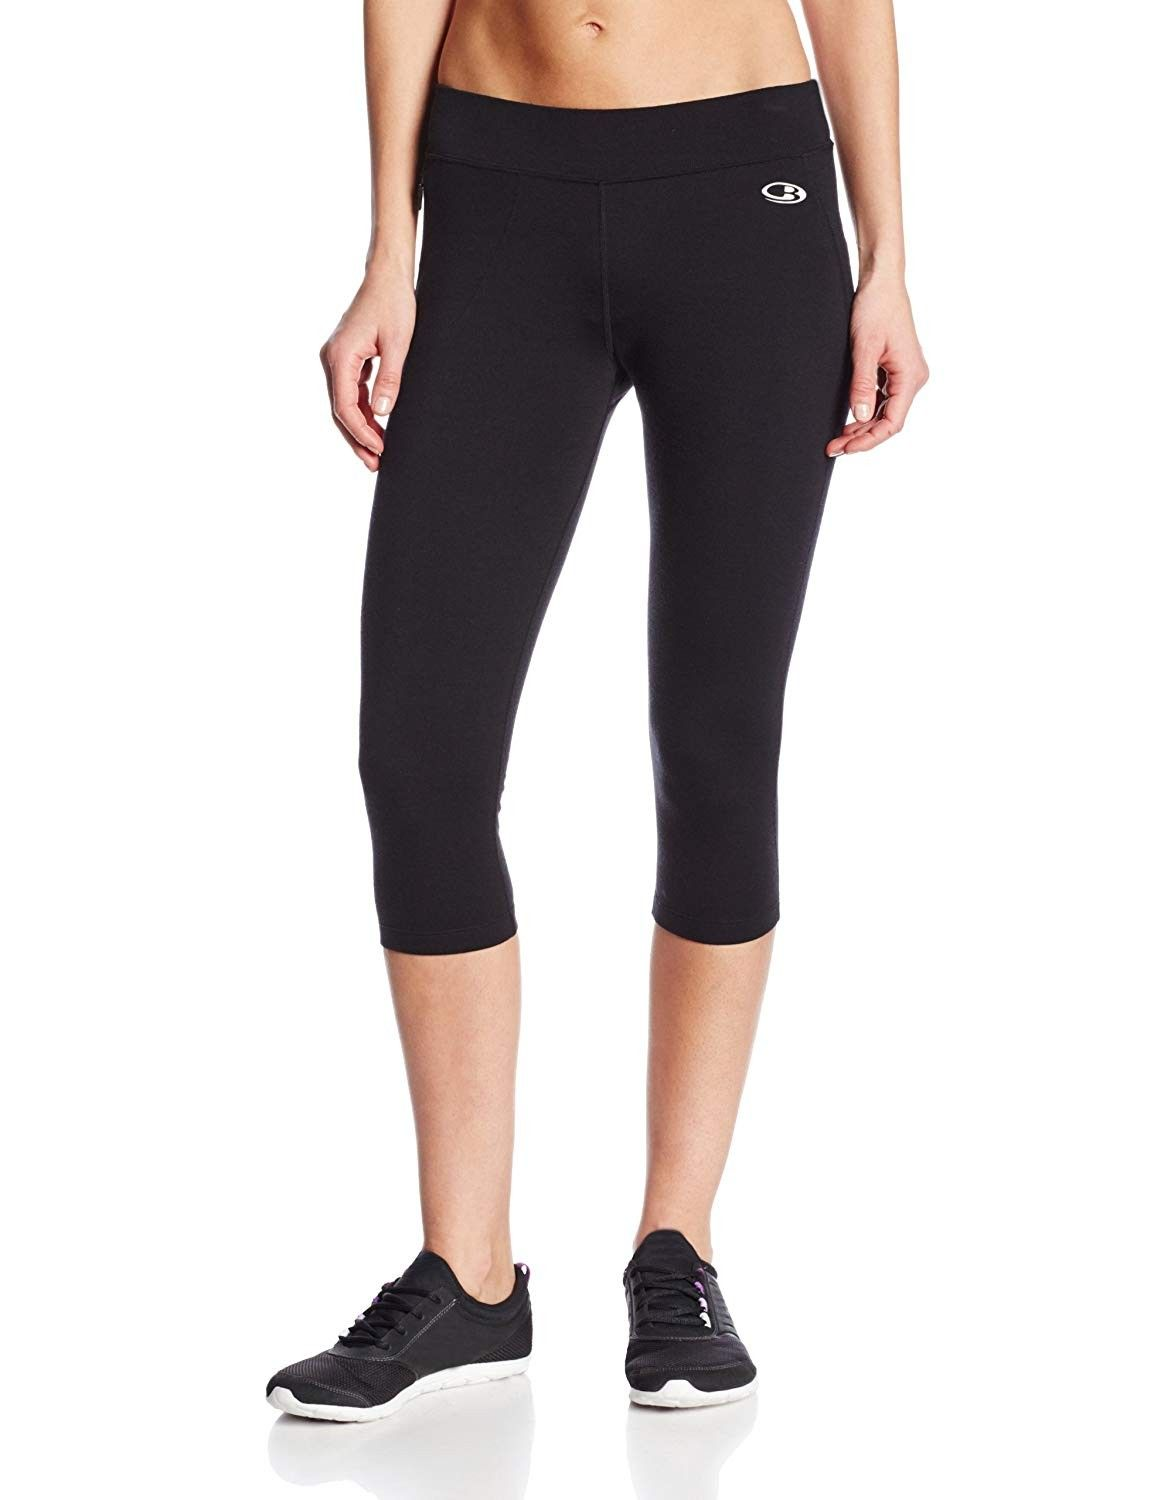 Rush Women's 3/4 Running Tight - SS17 - Black - CK11EIH5Y59 - Sports & Fitness Clothing, Women, Pant...